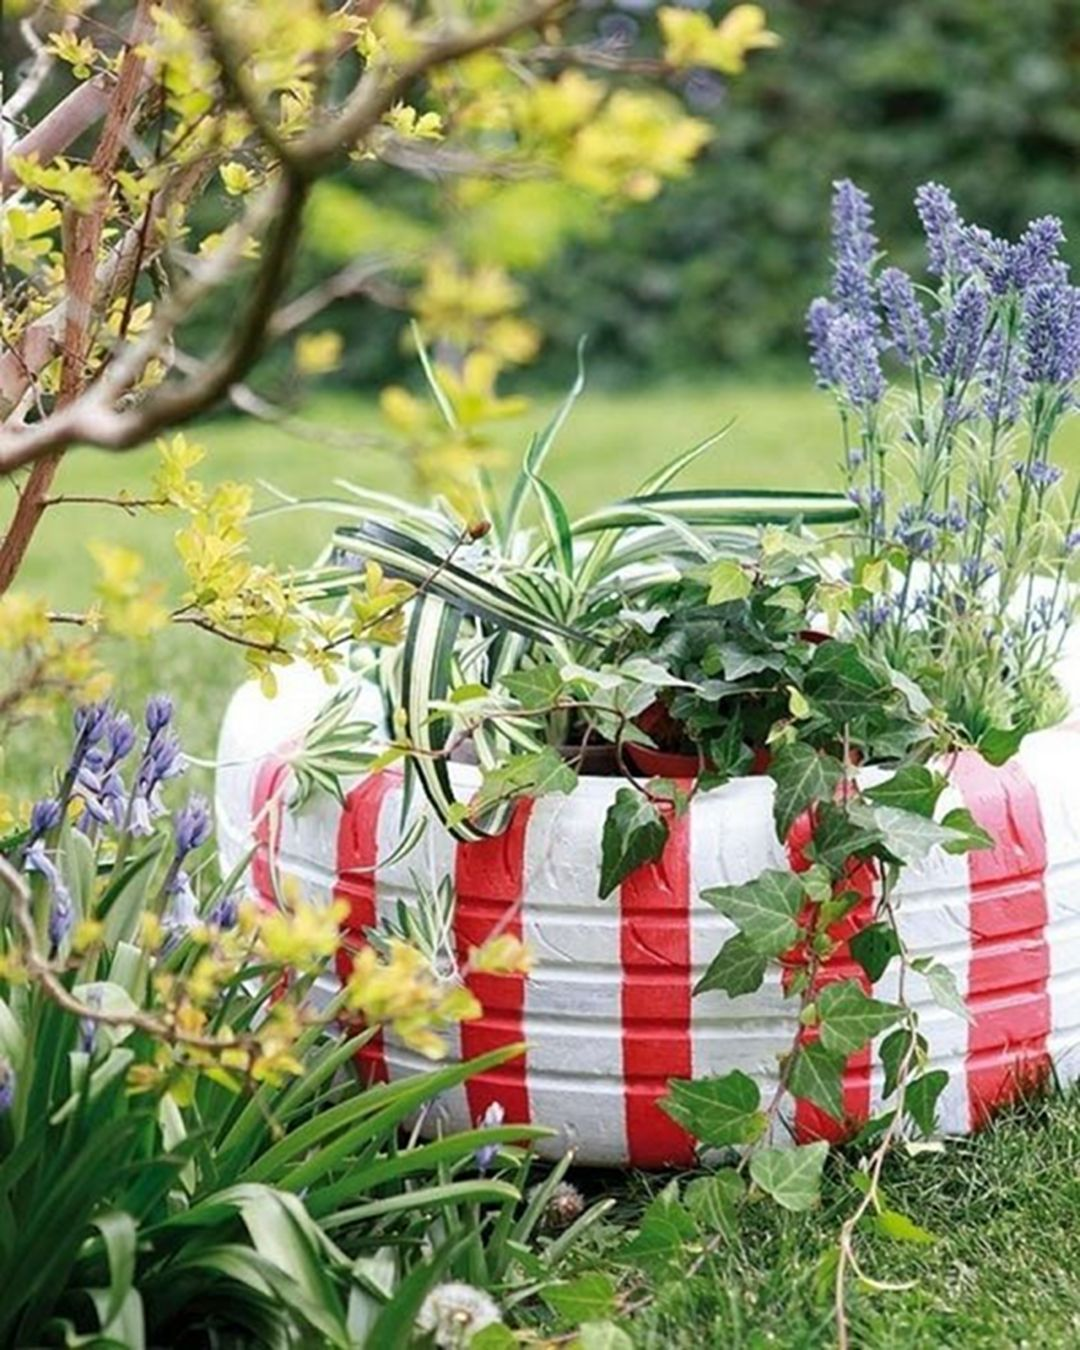 Cheap Gardening Ideas: 37 Easy And Cheap Beautiful DIY Garden Decor With Used